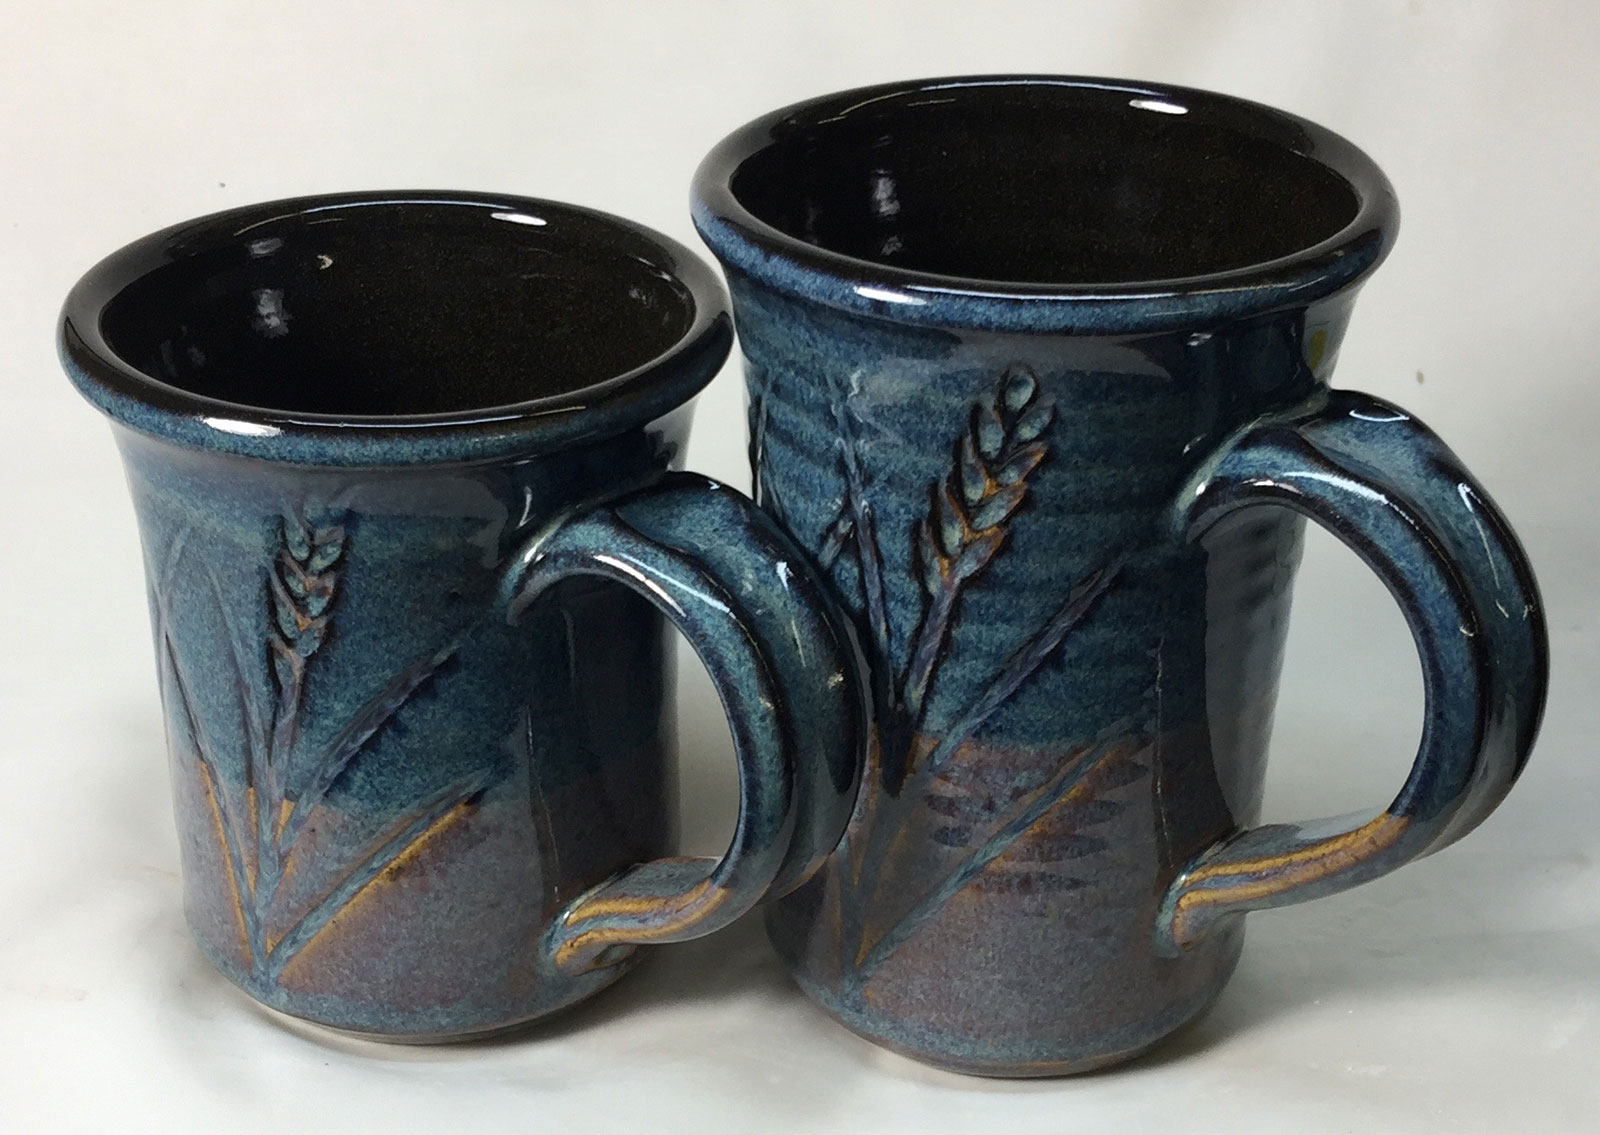 A black engobe transforms the floating blue glaze over it